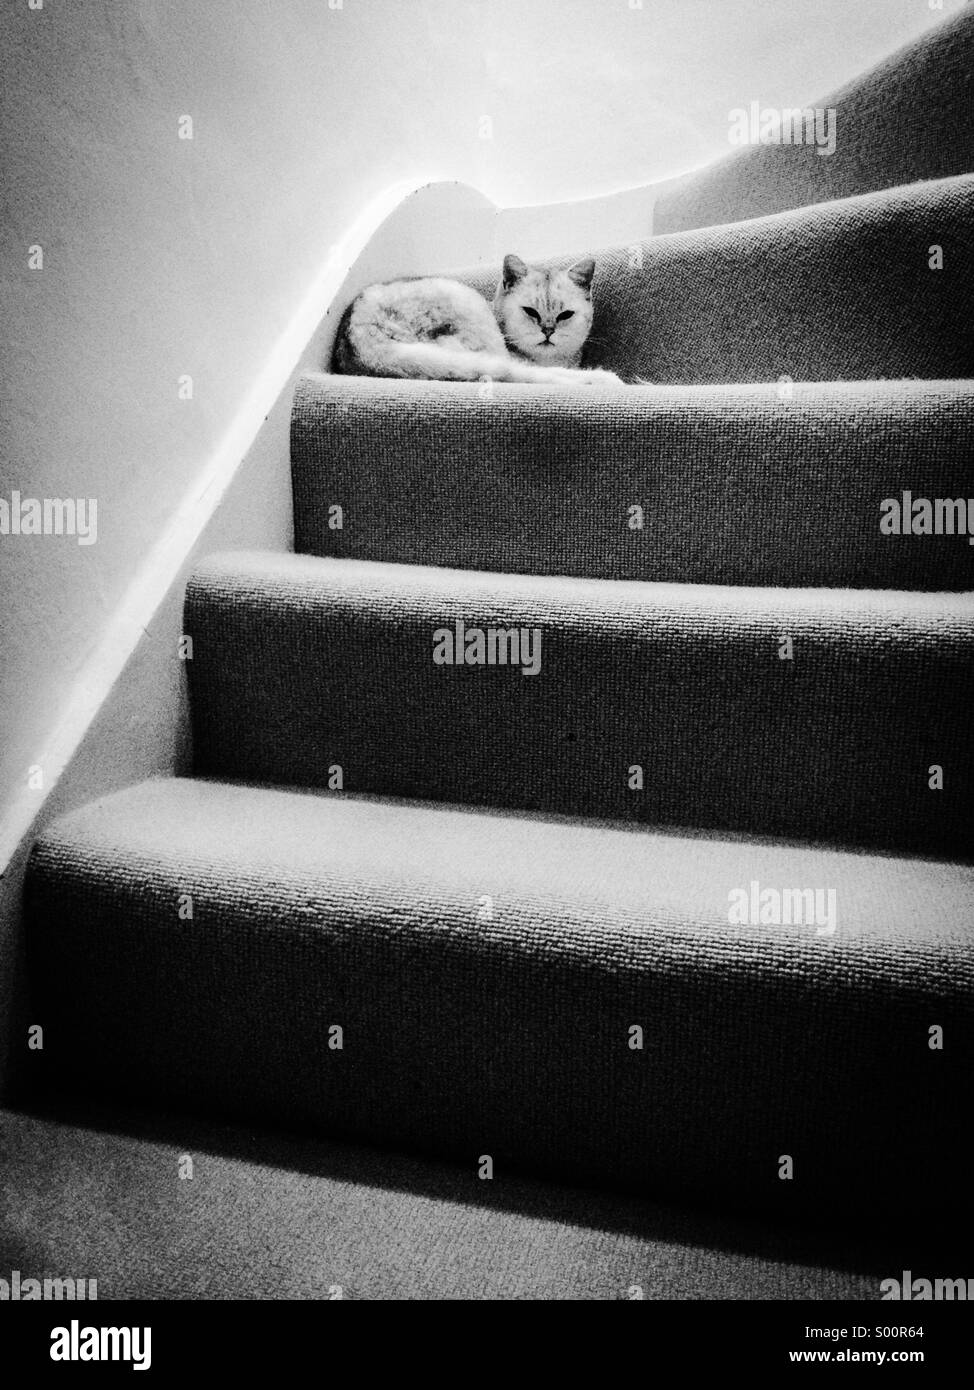 White cat resting on stairs - Stock Image